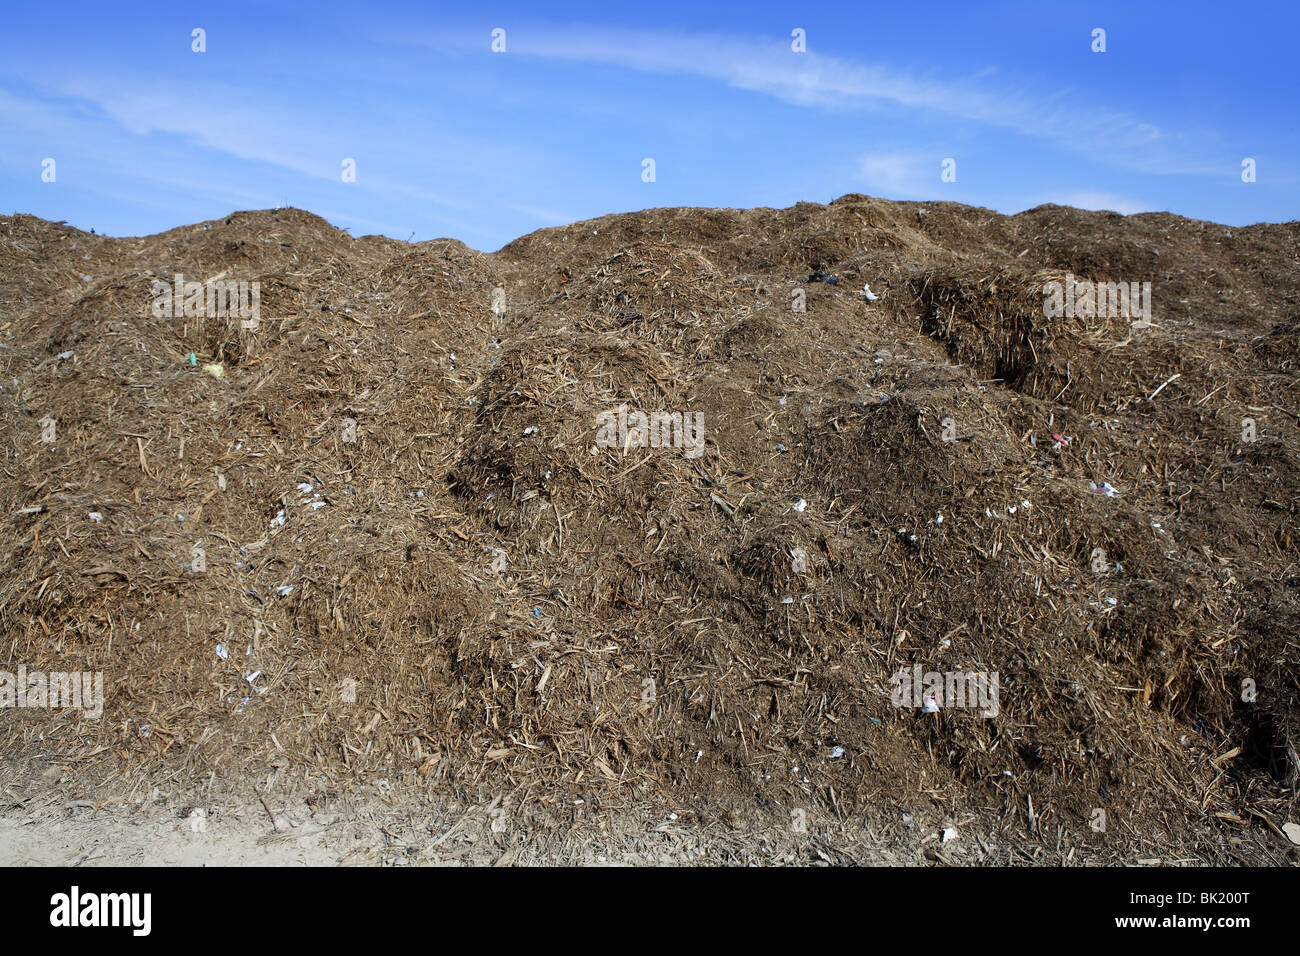 composting ecological compost warehouse blue sky Stock Photo